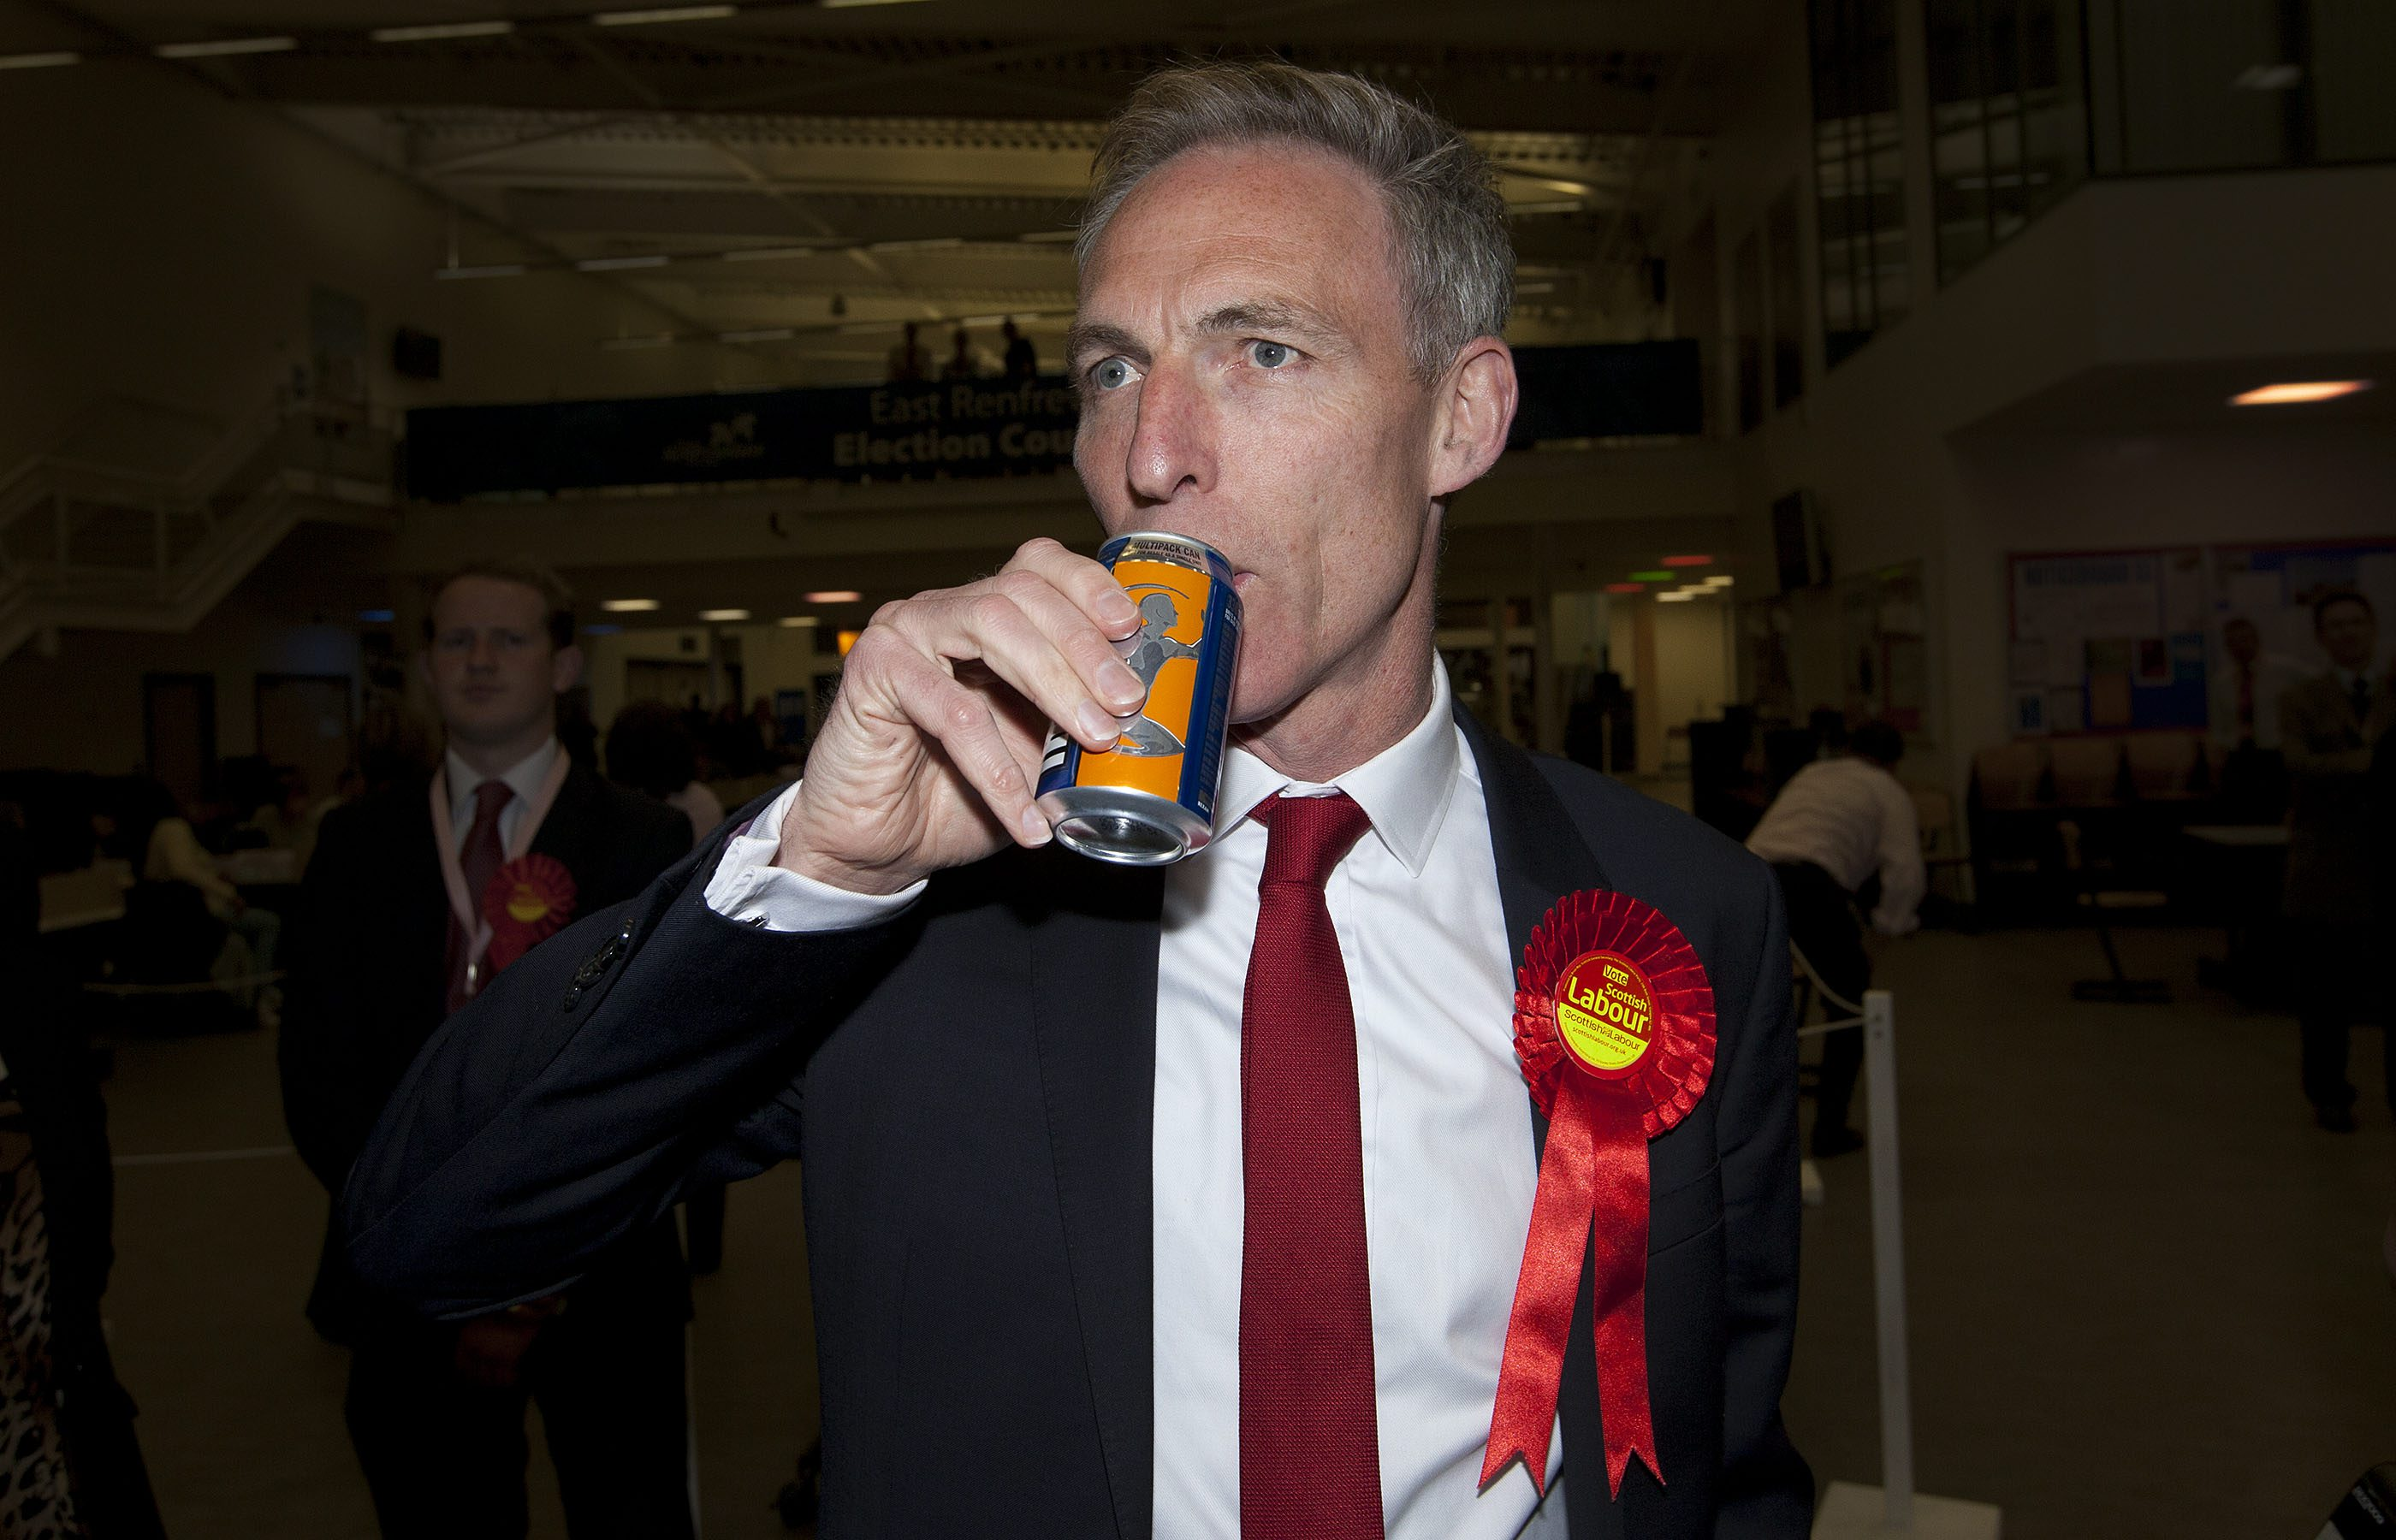 General Election 2015. Scottish Labour leader Jim Murphy looses his seat in East Renfrewshire to the SNP, Murphy had held the seat since 1997. May 7 2015